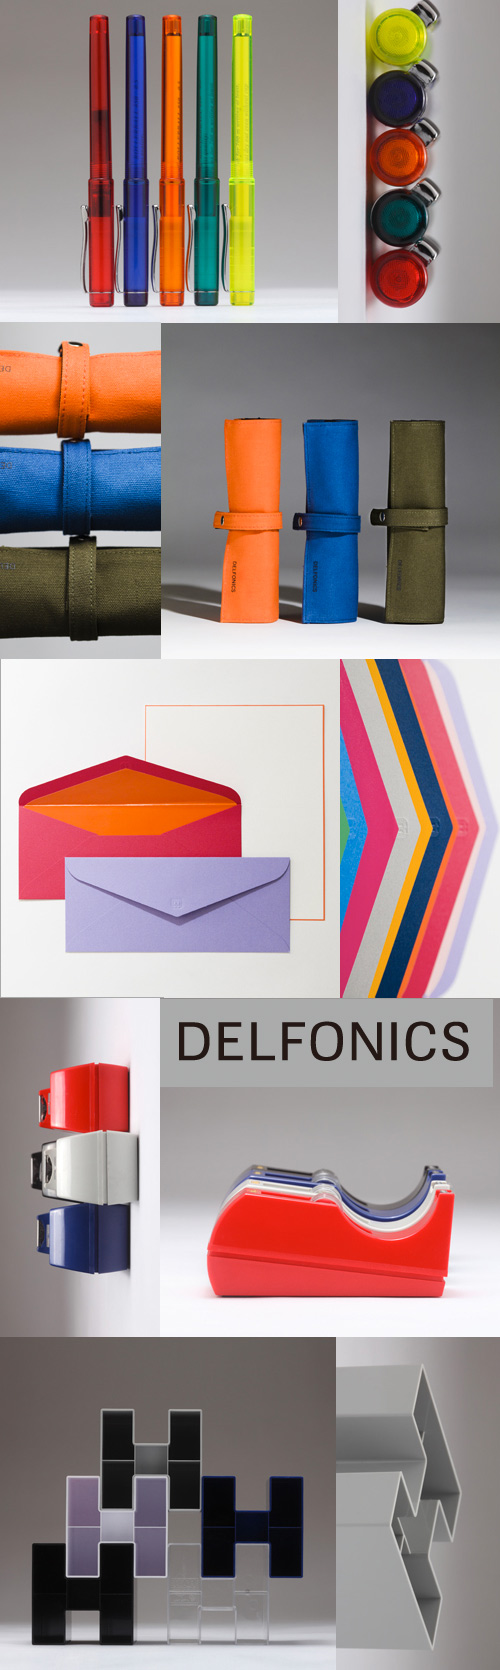 delfonics-office-supplies